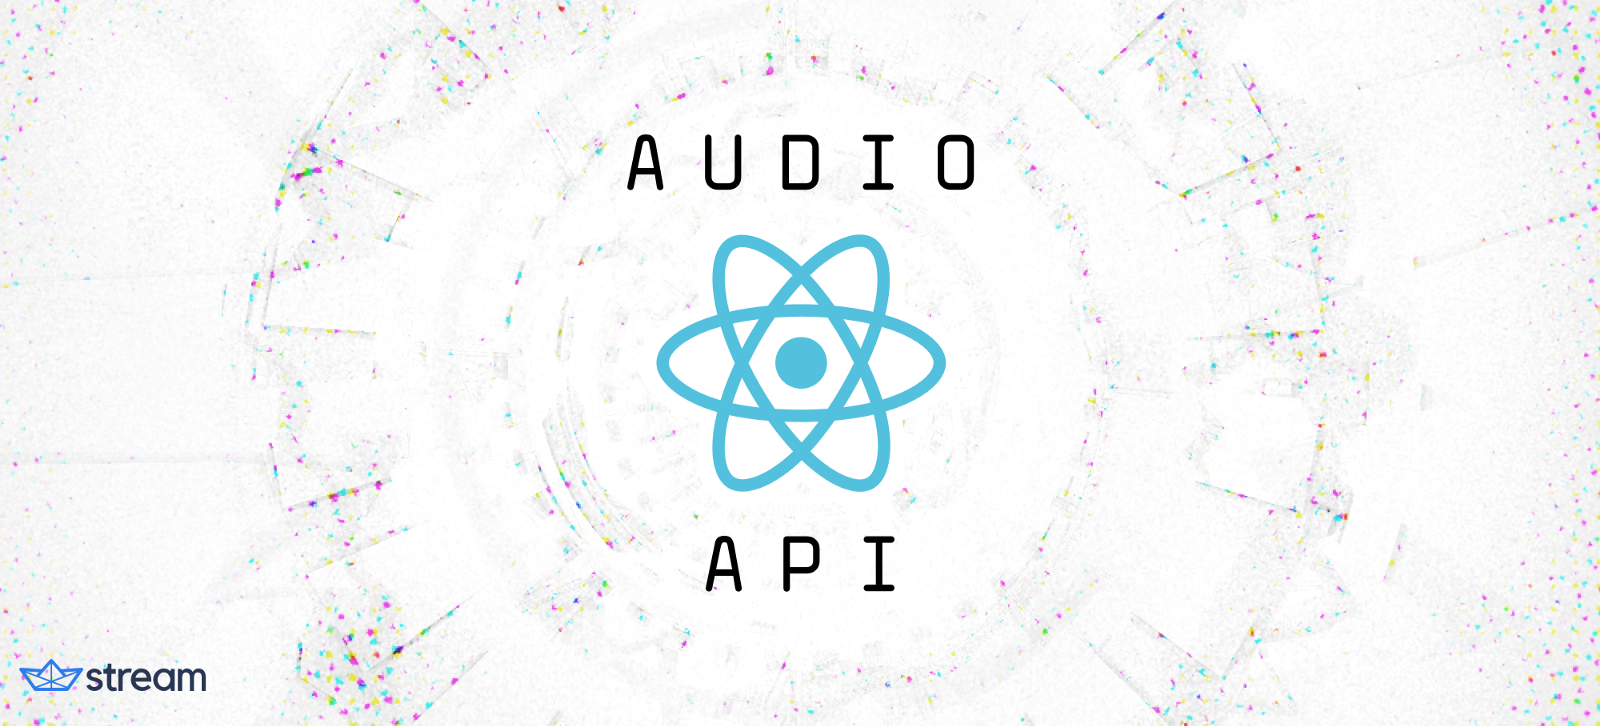 Experimenting with React Native & Expo's Audio API - By